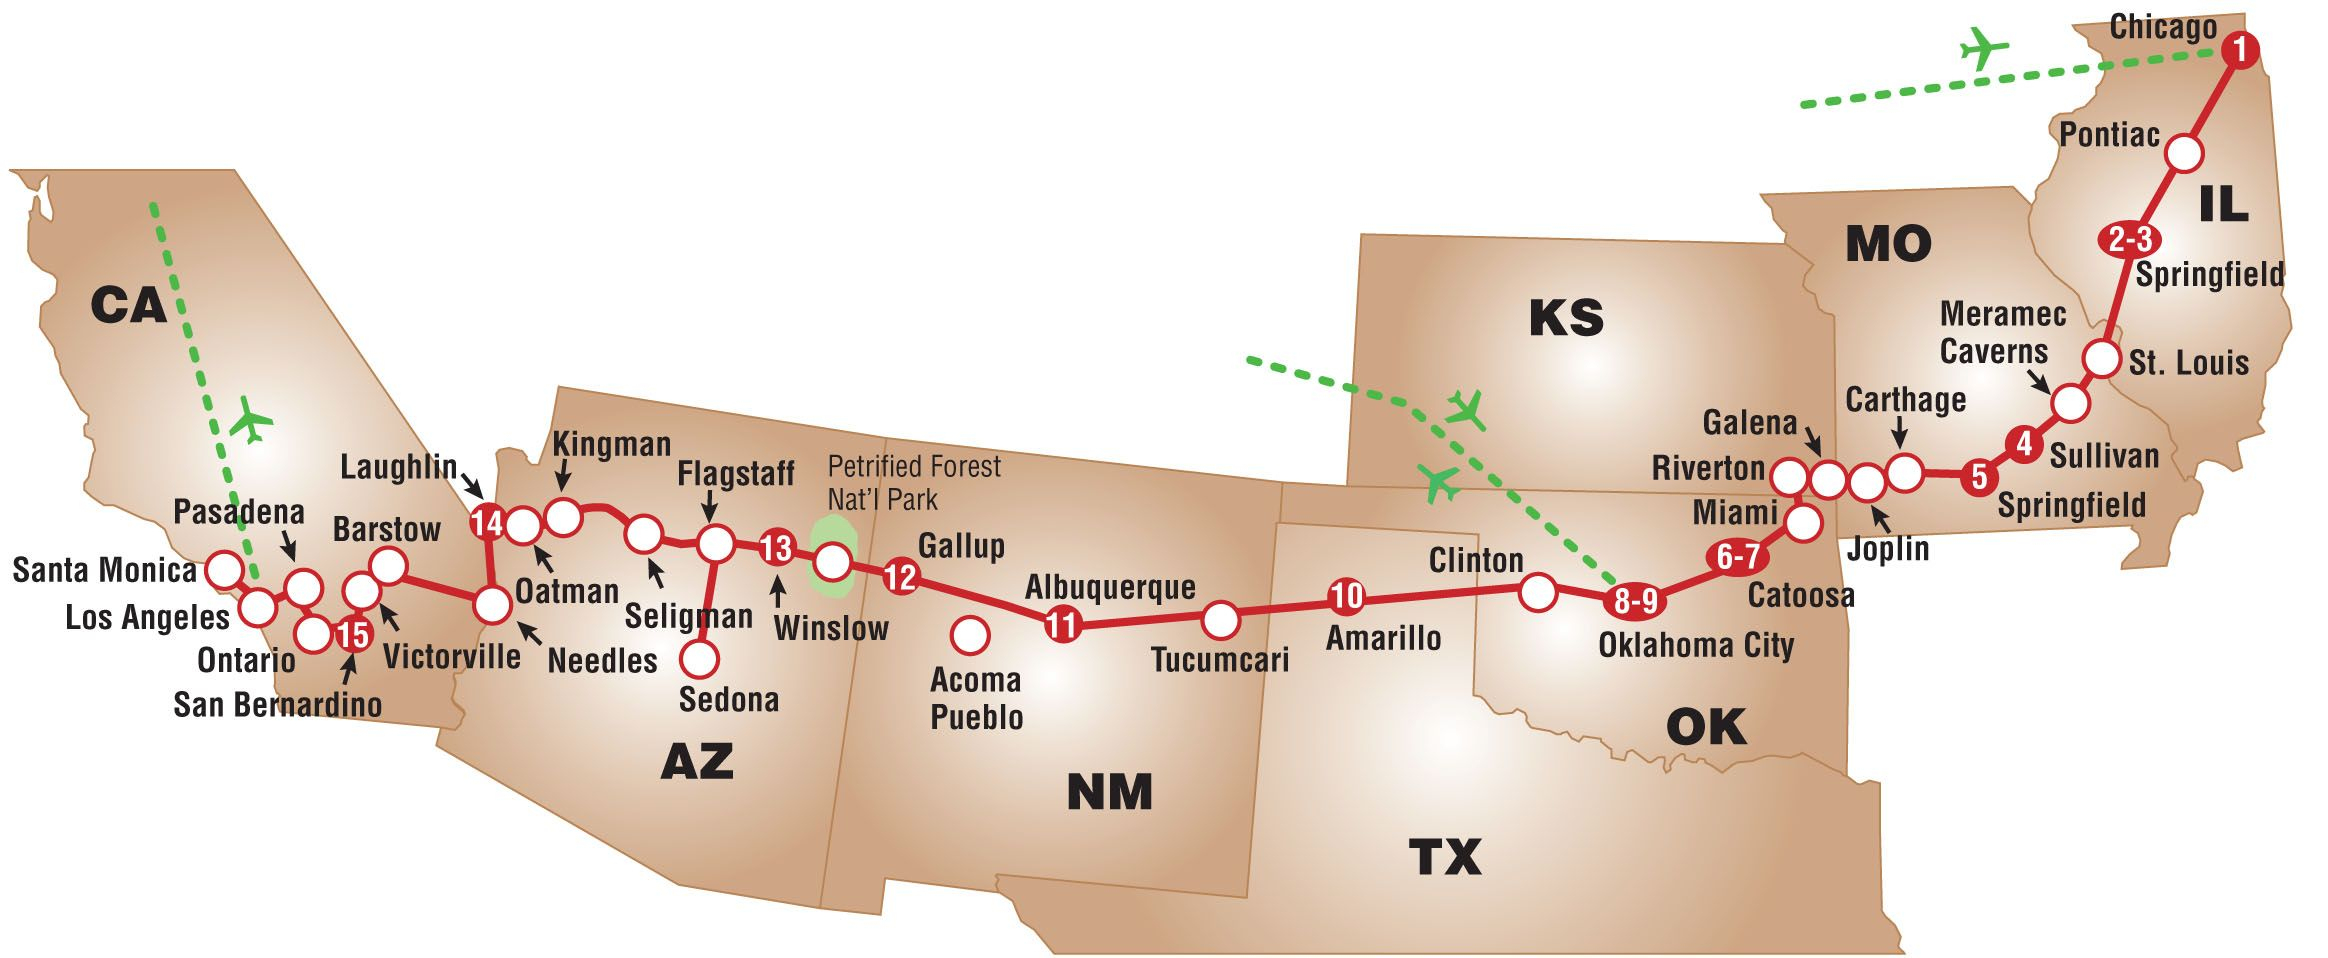 Entire Route 66 Map - Start To Finish   Route 66   Pinterest   Route - Free Printable Route 66 Map